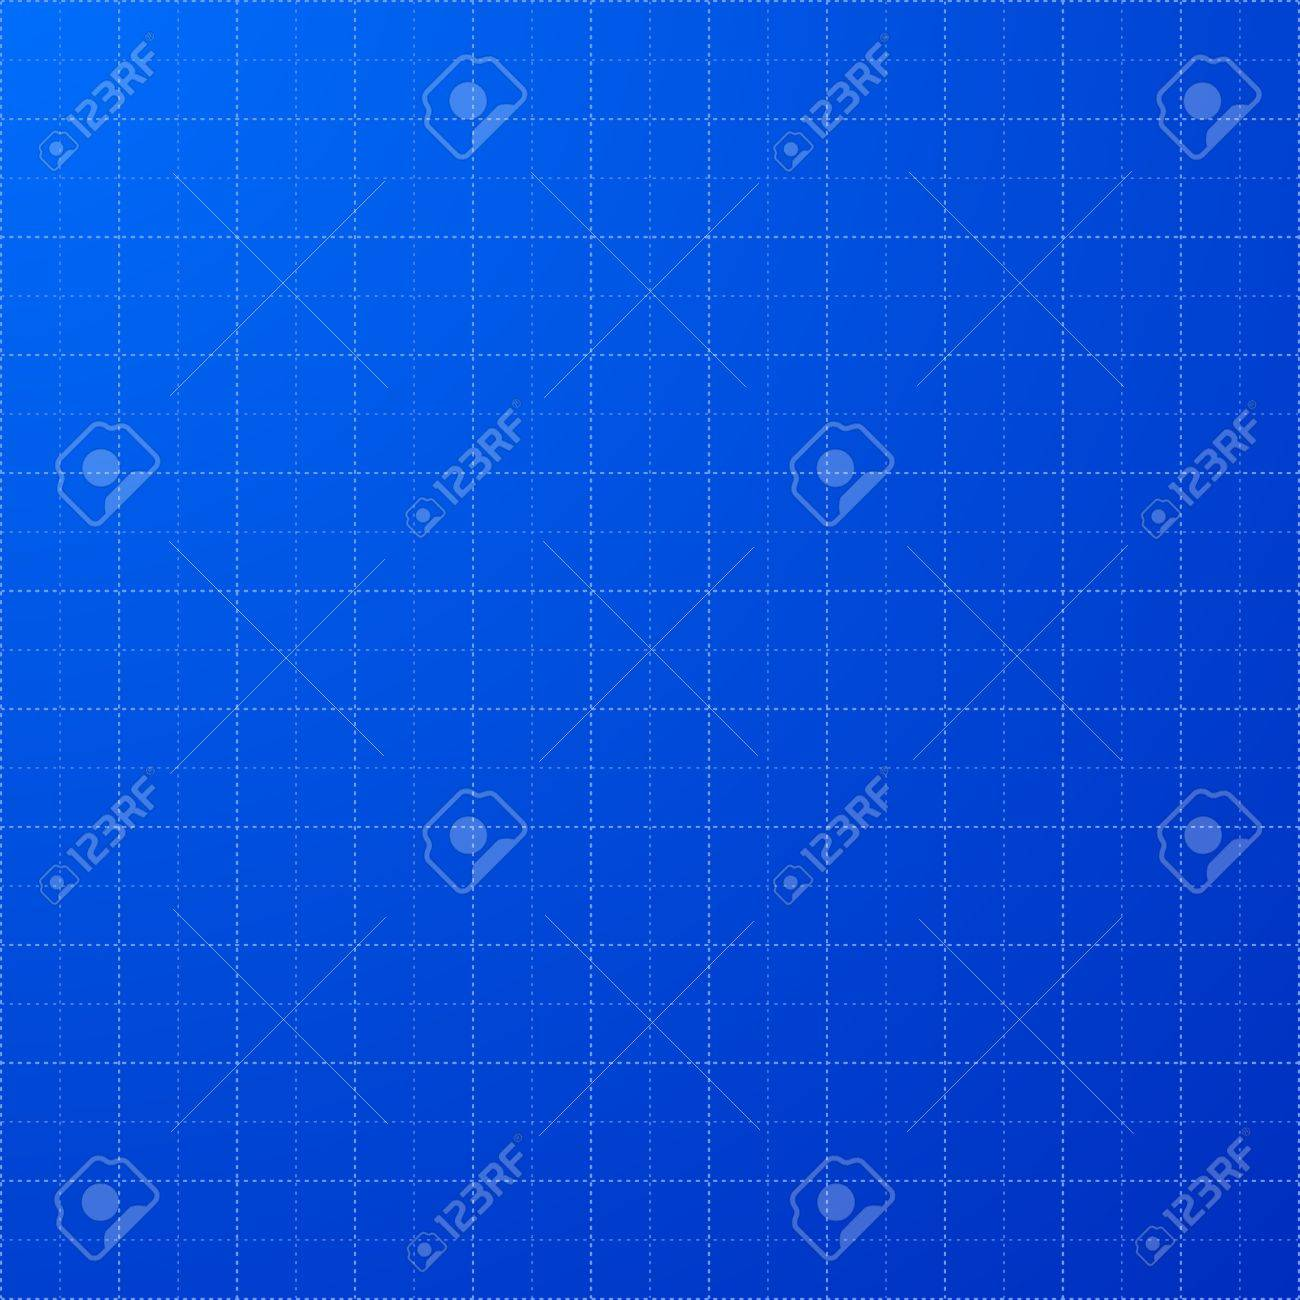 Detailed illustration of a blueprint pattern royalty free cliparts detailed illustration of a blueprint pattern stock vector 17754550 malvernweather Choice Image